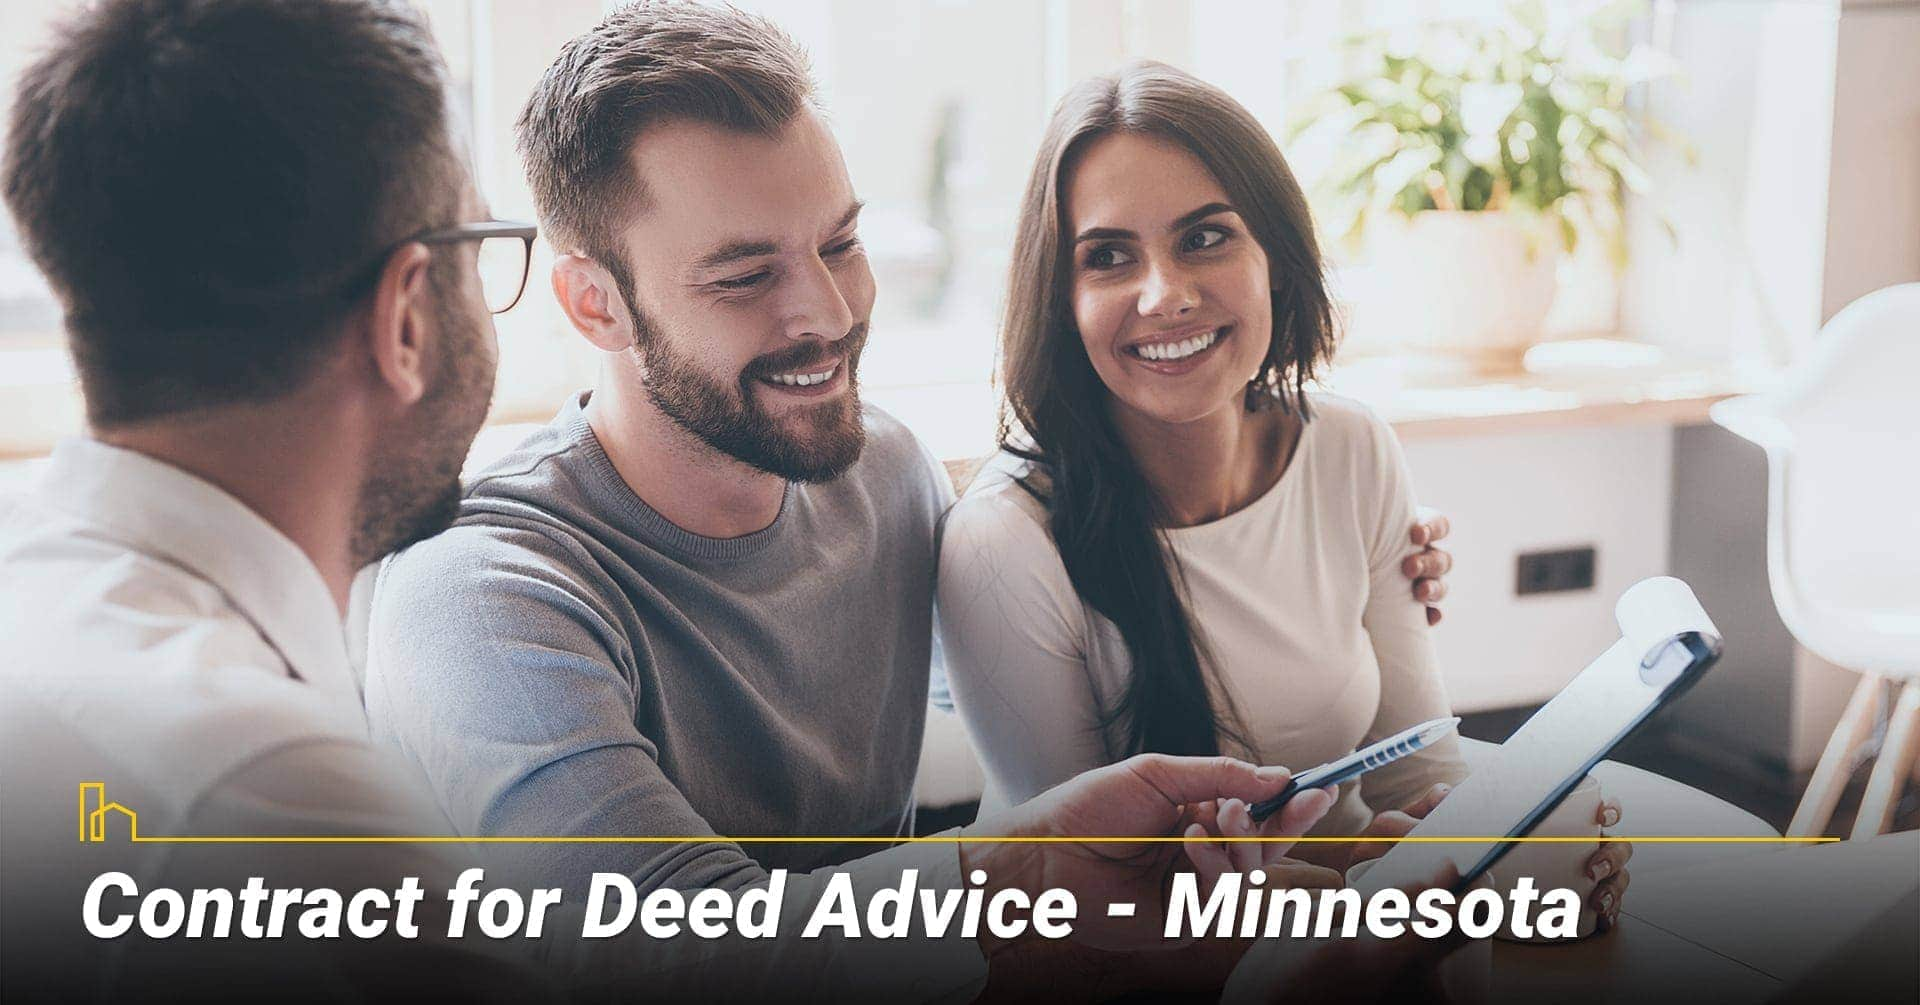 Contract for Deed Advice–Minnesota, best approaches to Contract for Deed in MN